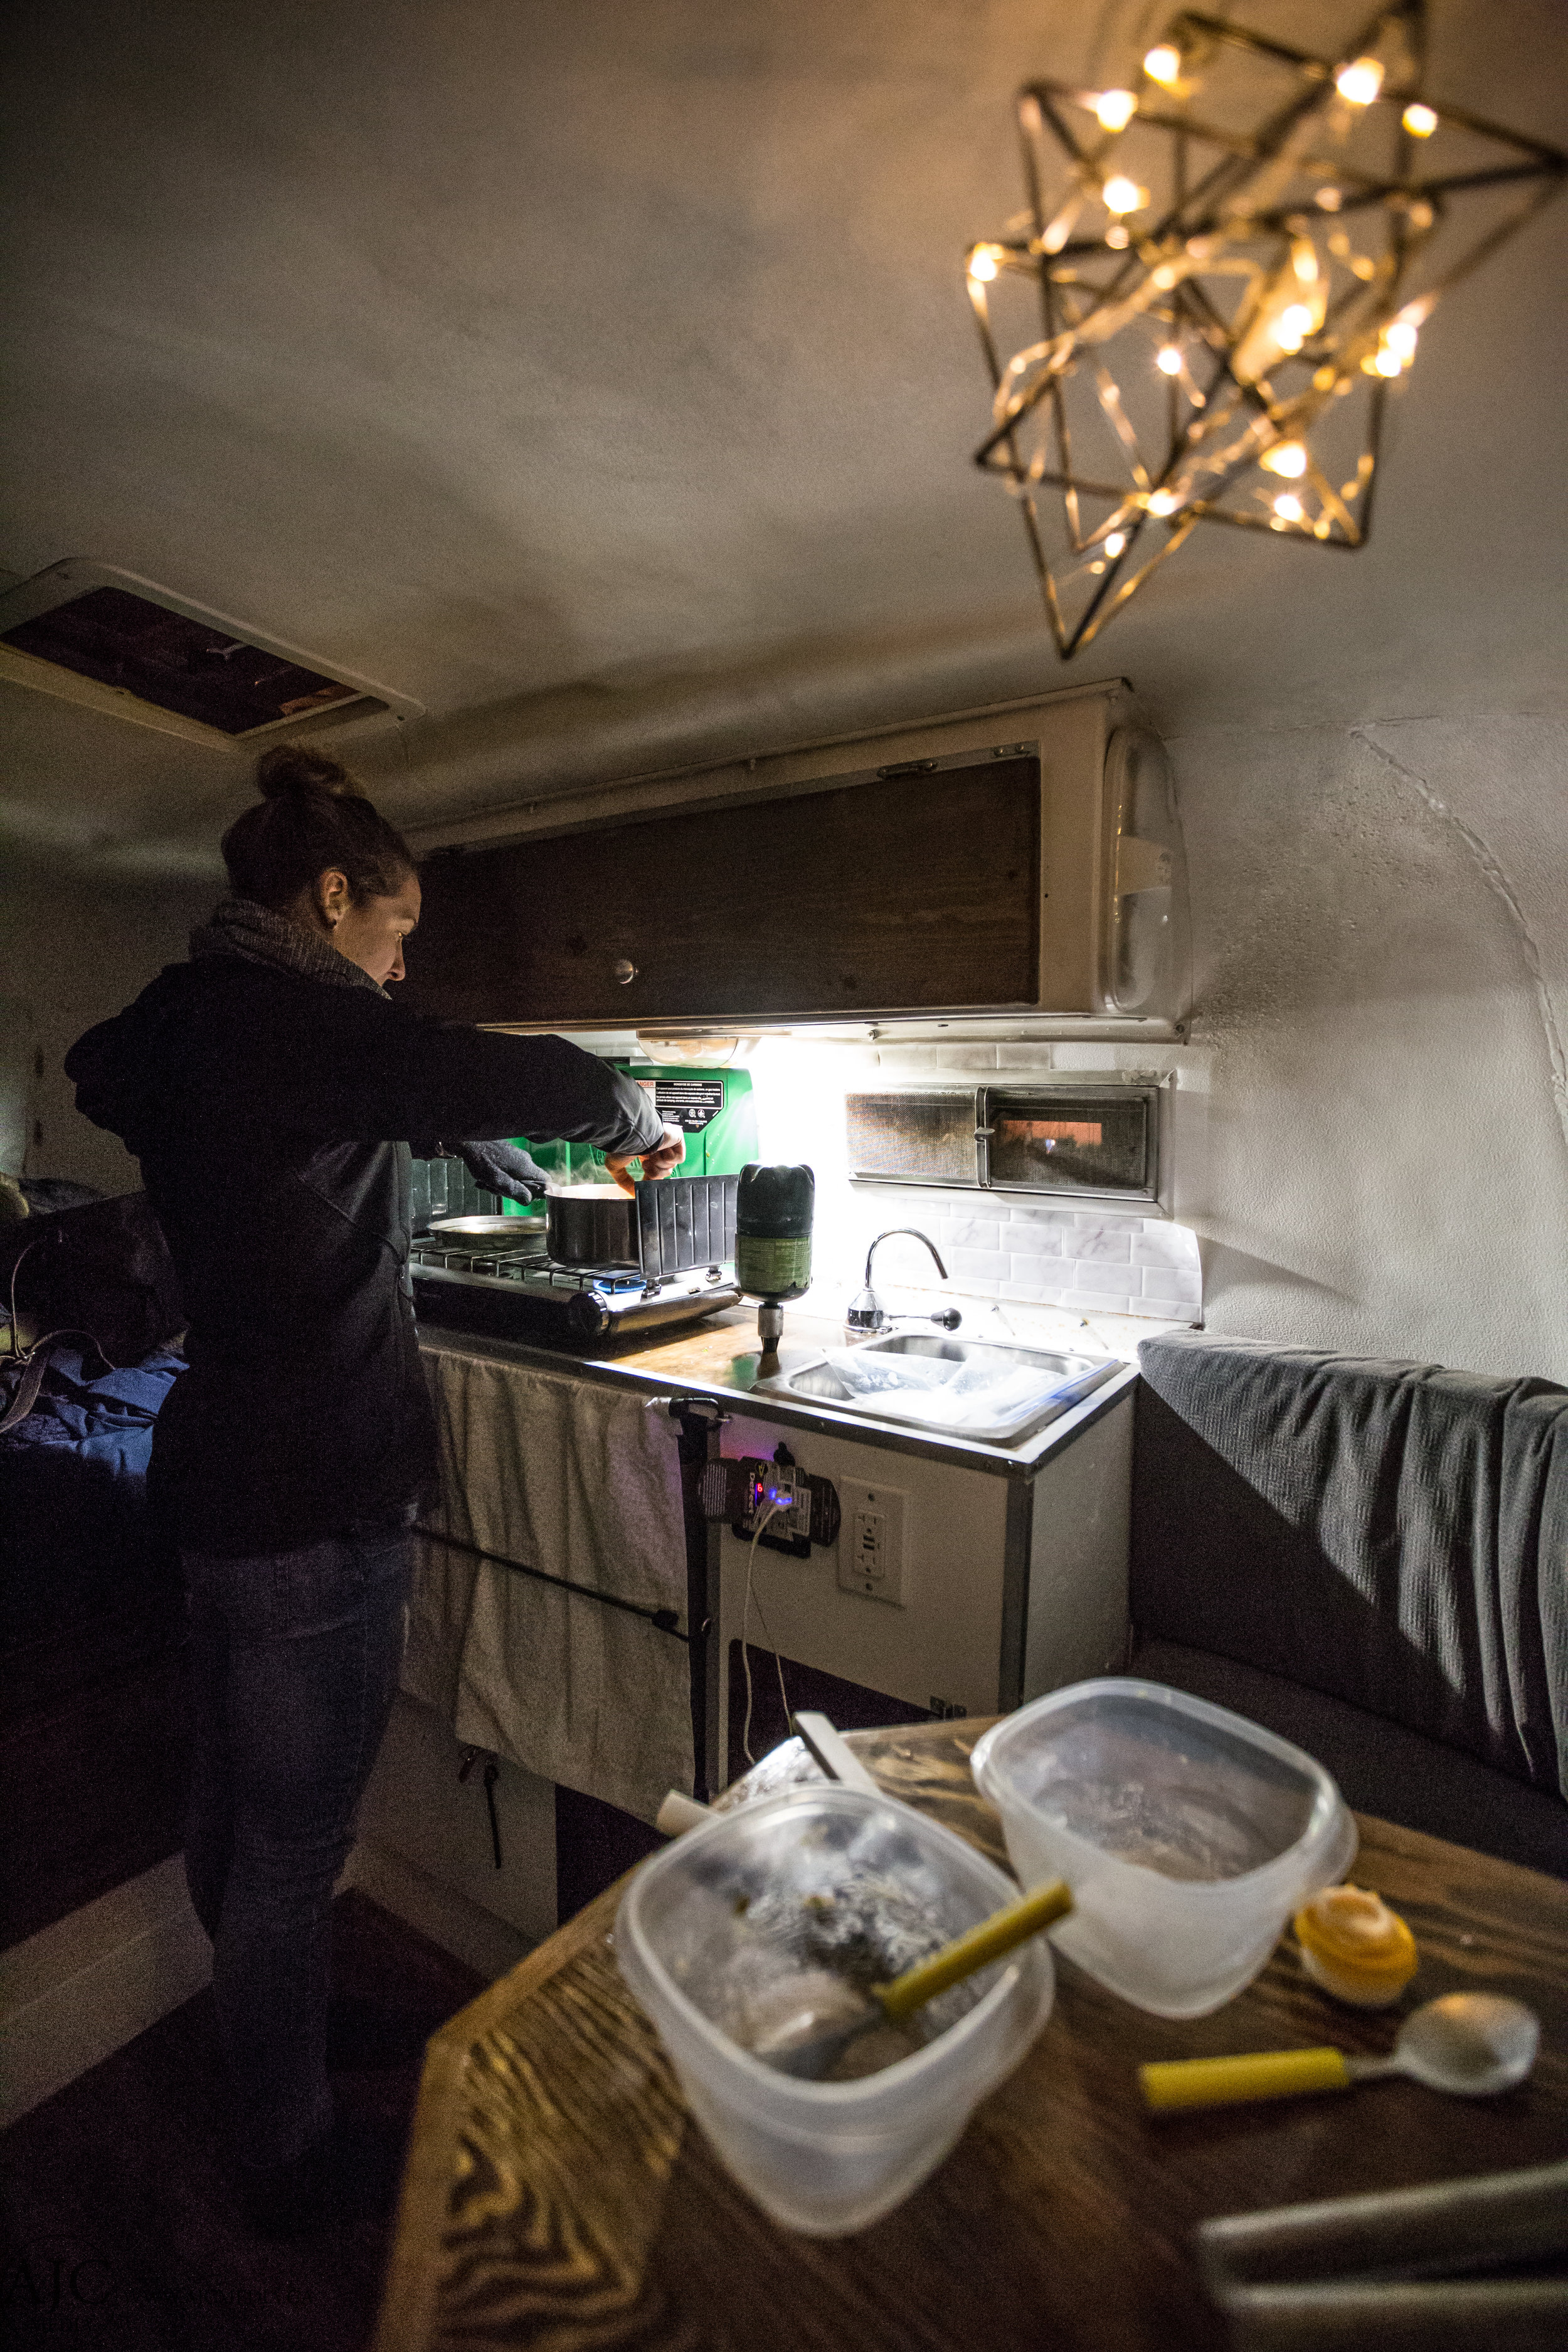 Alison is a pro at cooking in our tiny home.  I'm a pretty lucky guy to have a wife as amazing as her, my travels would be significantly lacking without her.  And yes, we're cooking inside the camper again, we just don't have an open flame near gas like last time.